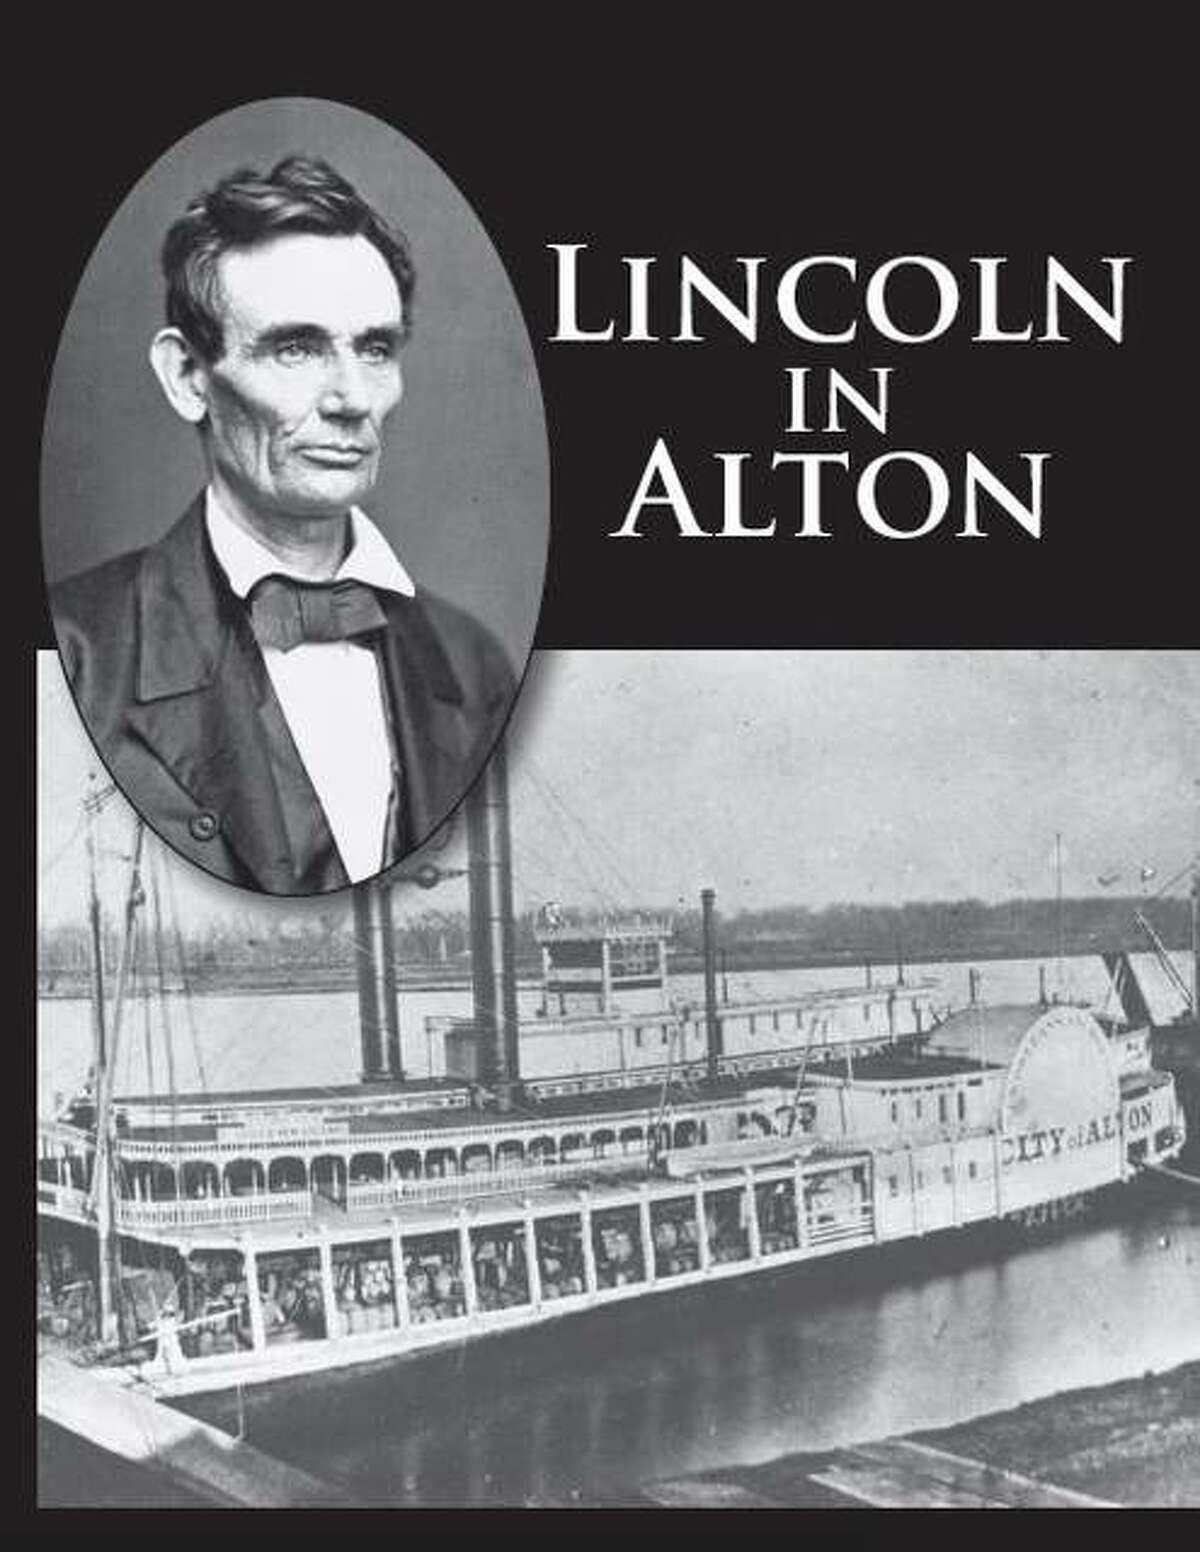 Lincoln in Alton has been awarded the Certificate of Excellence from the Illinois State Historical Society.